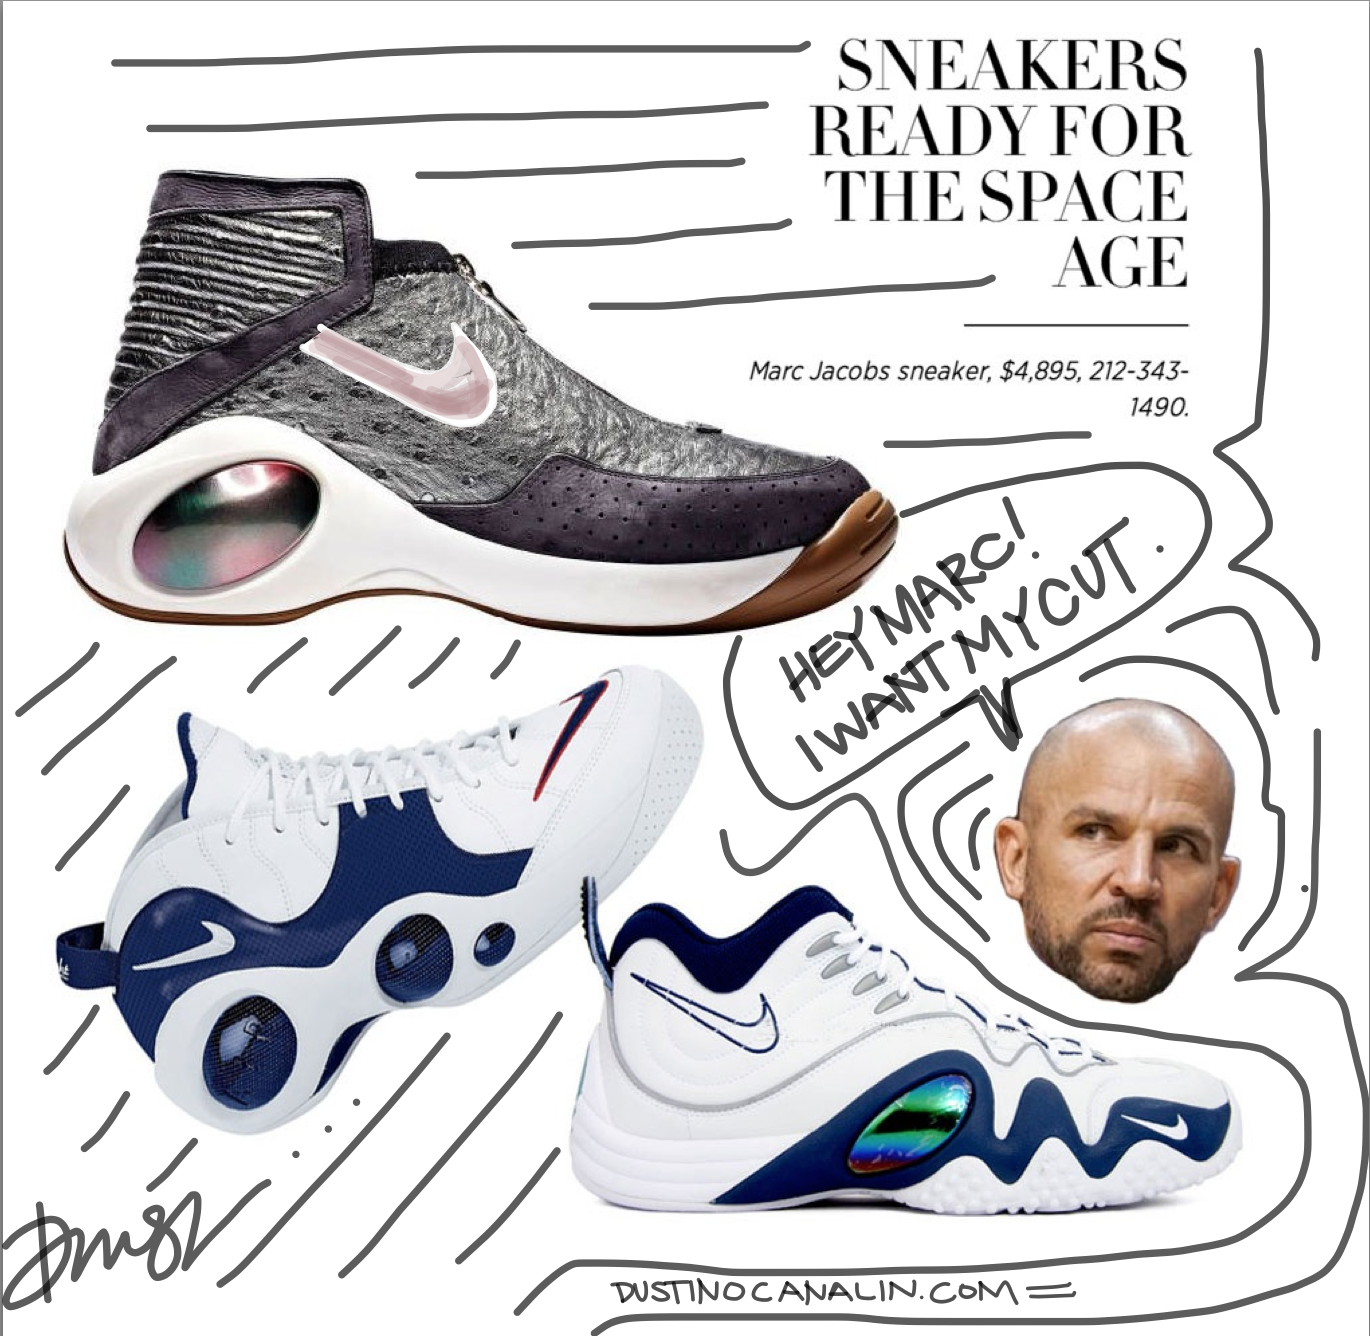 $4,895 for some bootleg Jason Kidd's. Not inspired.